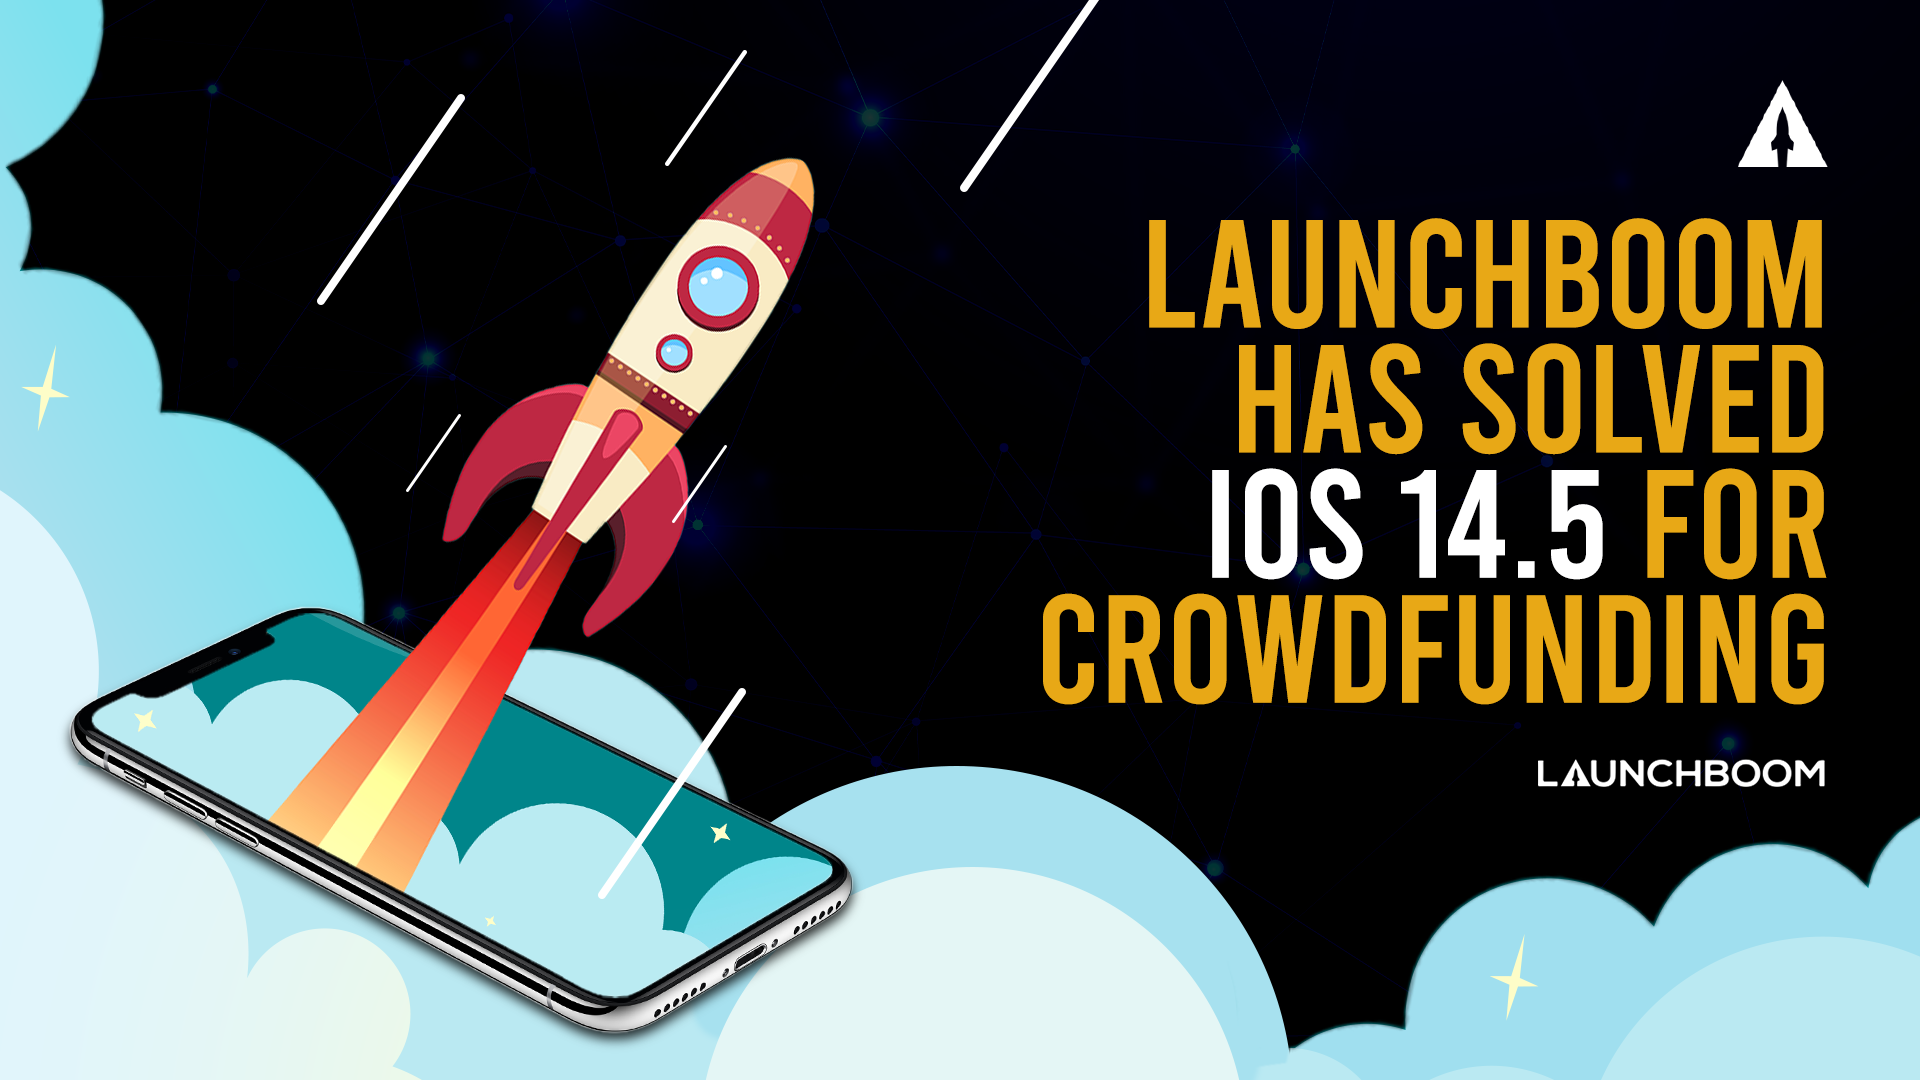 LaunchBoom has solved iOS 14.5 for crowdfunding